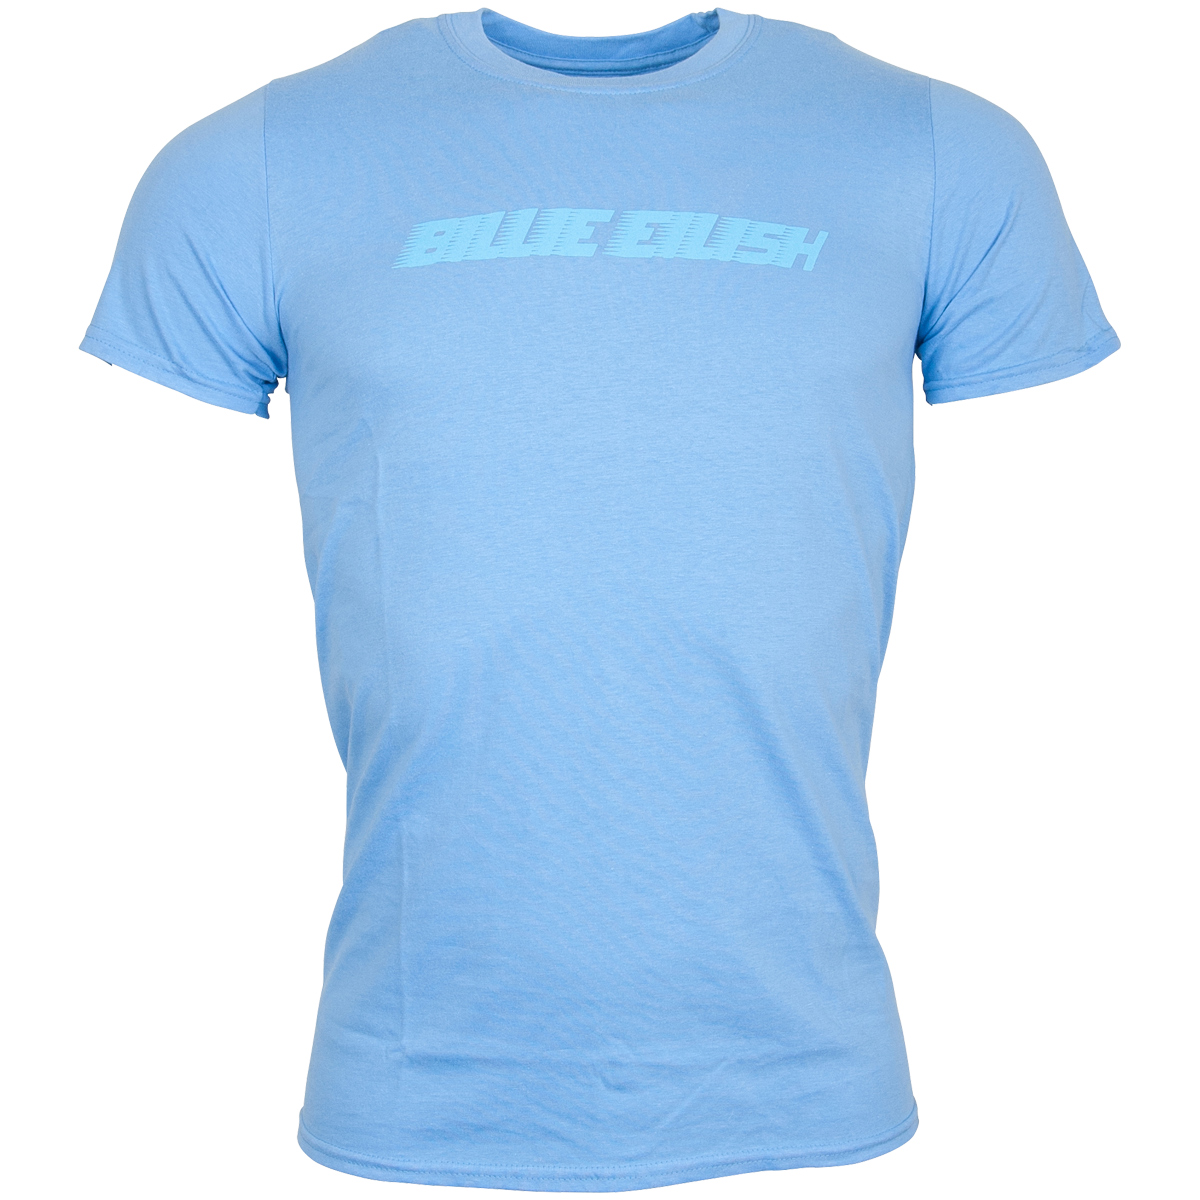 Billie Eilish - T Shirt Racer Logo - blau